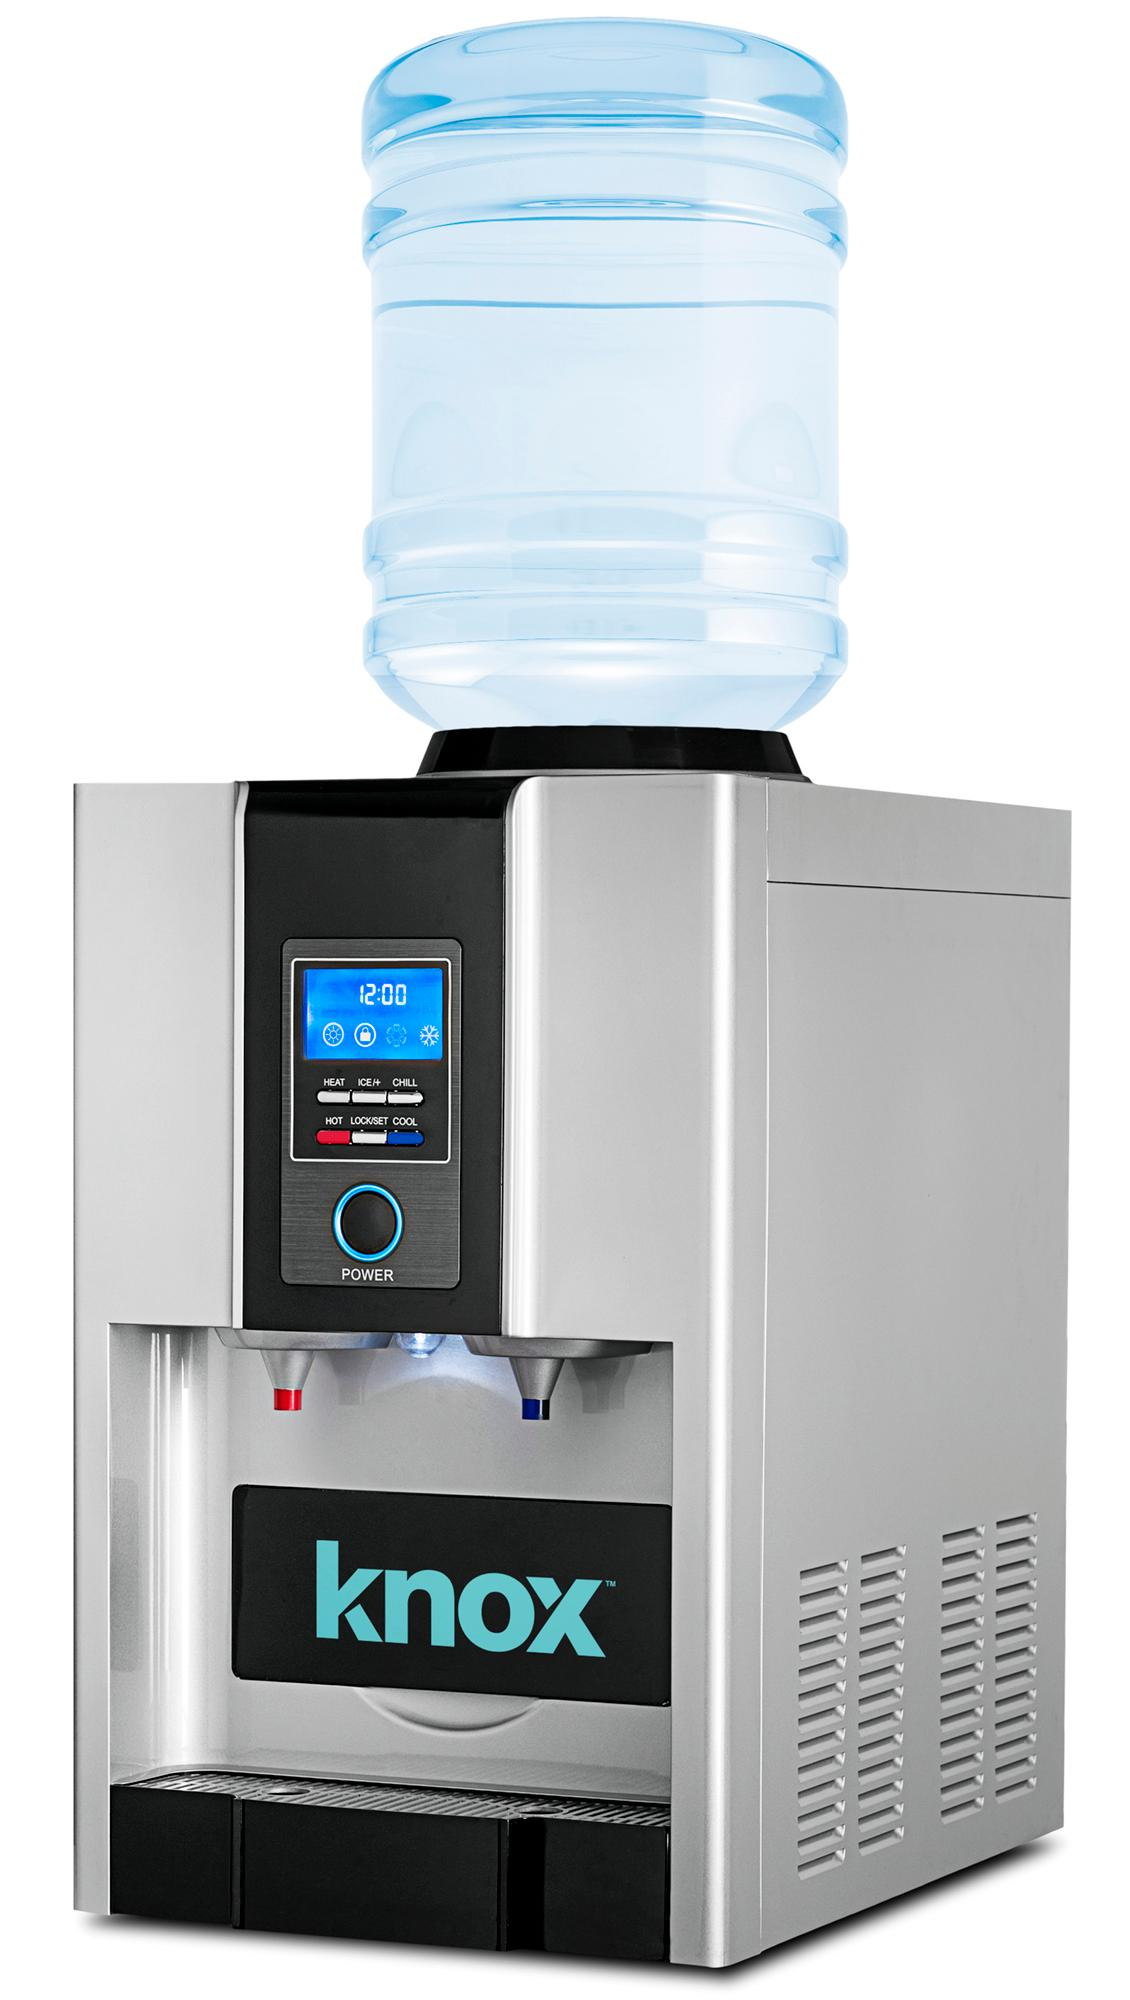 Amazon.com: Knox Tabletop Hot/Cold Water Cooler with Built